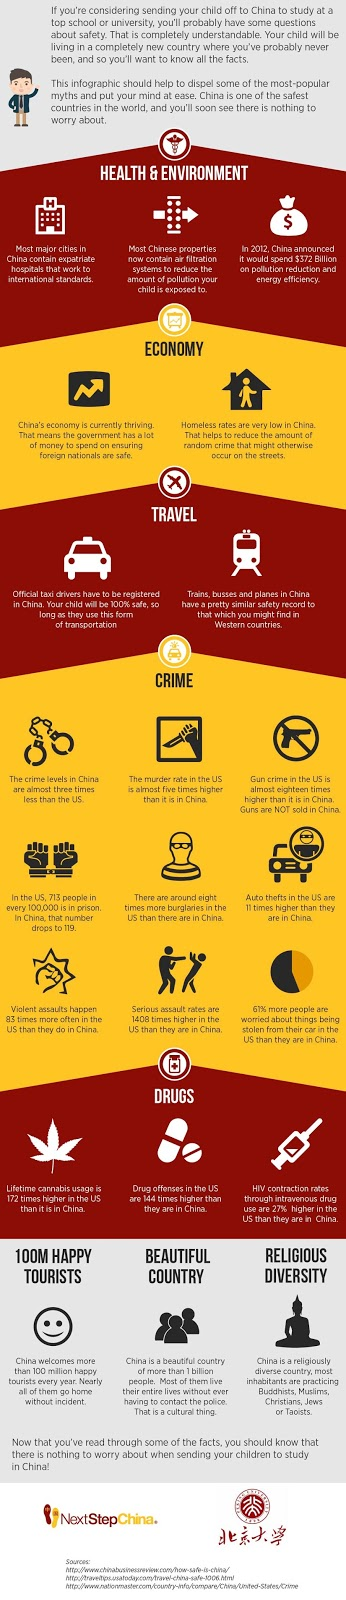 China safety infographic